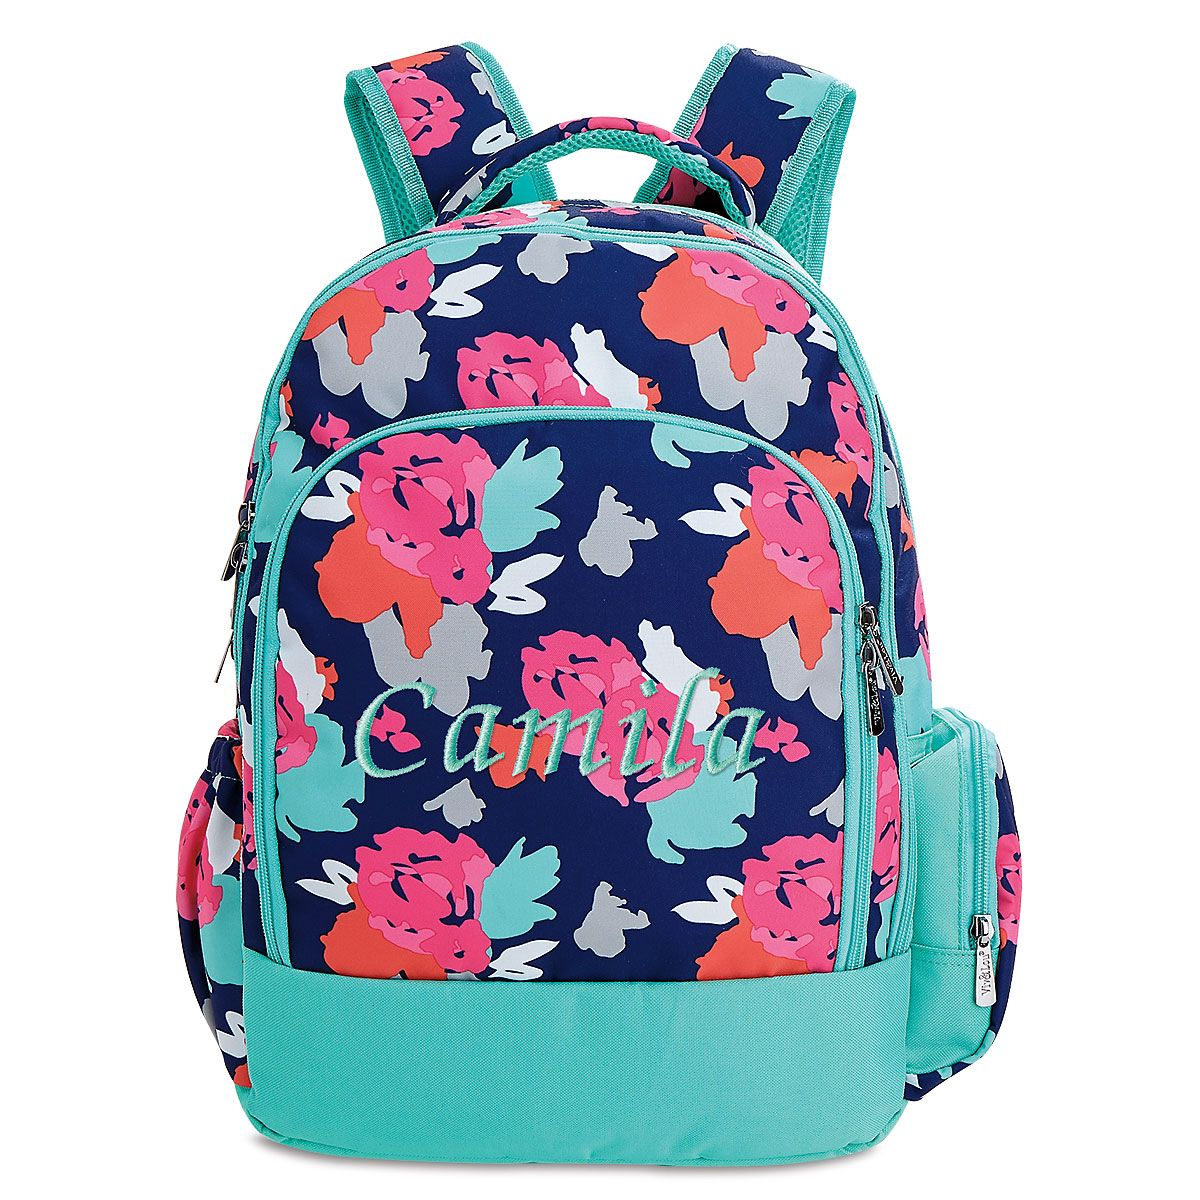 Personalized Amelia Backpack – Name